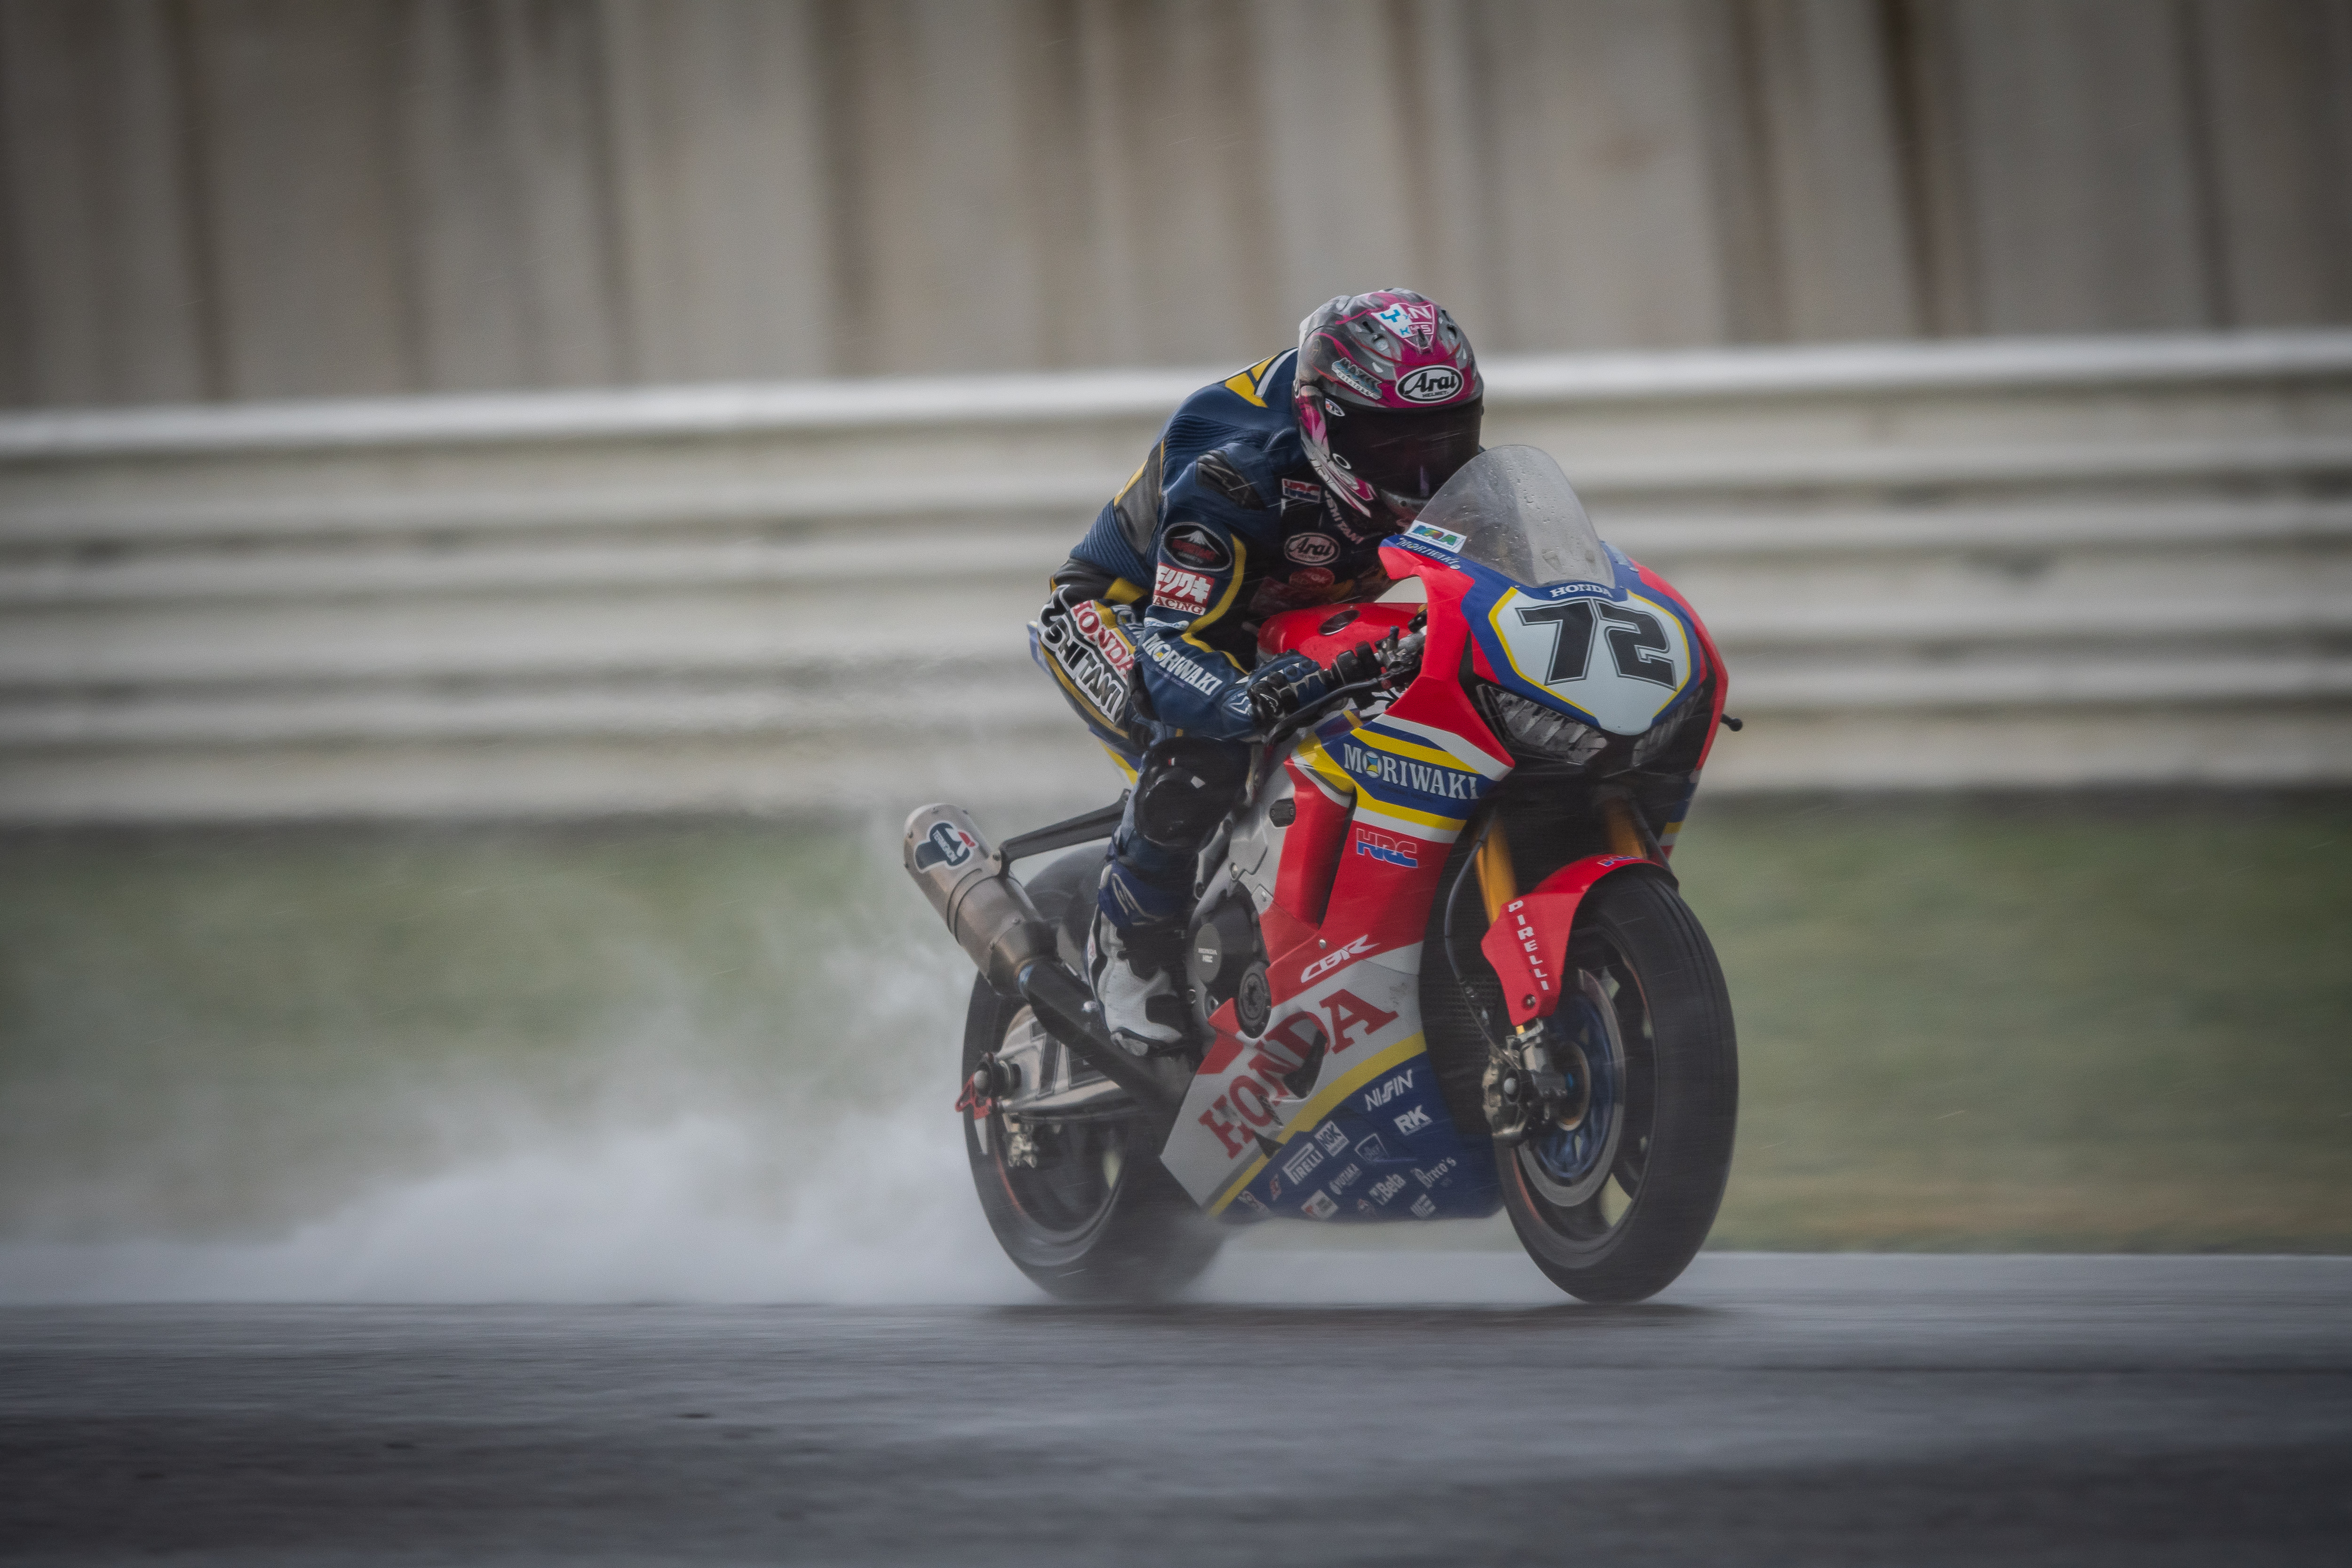 Moriwaki_Althea_Honda_Team_Misano_289